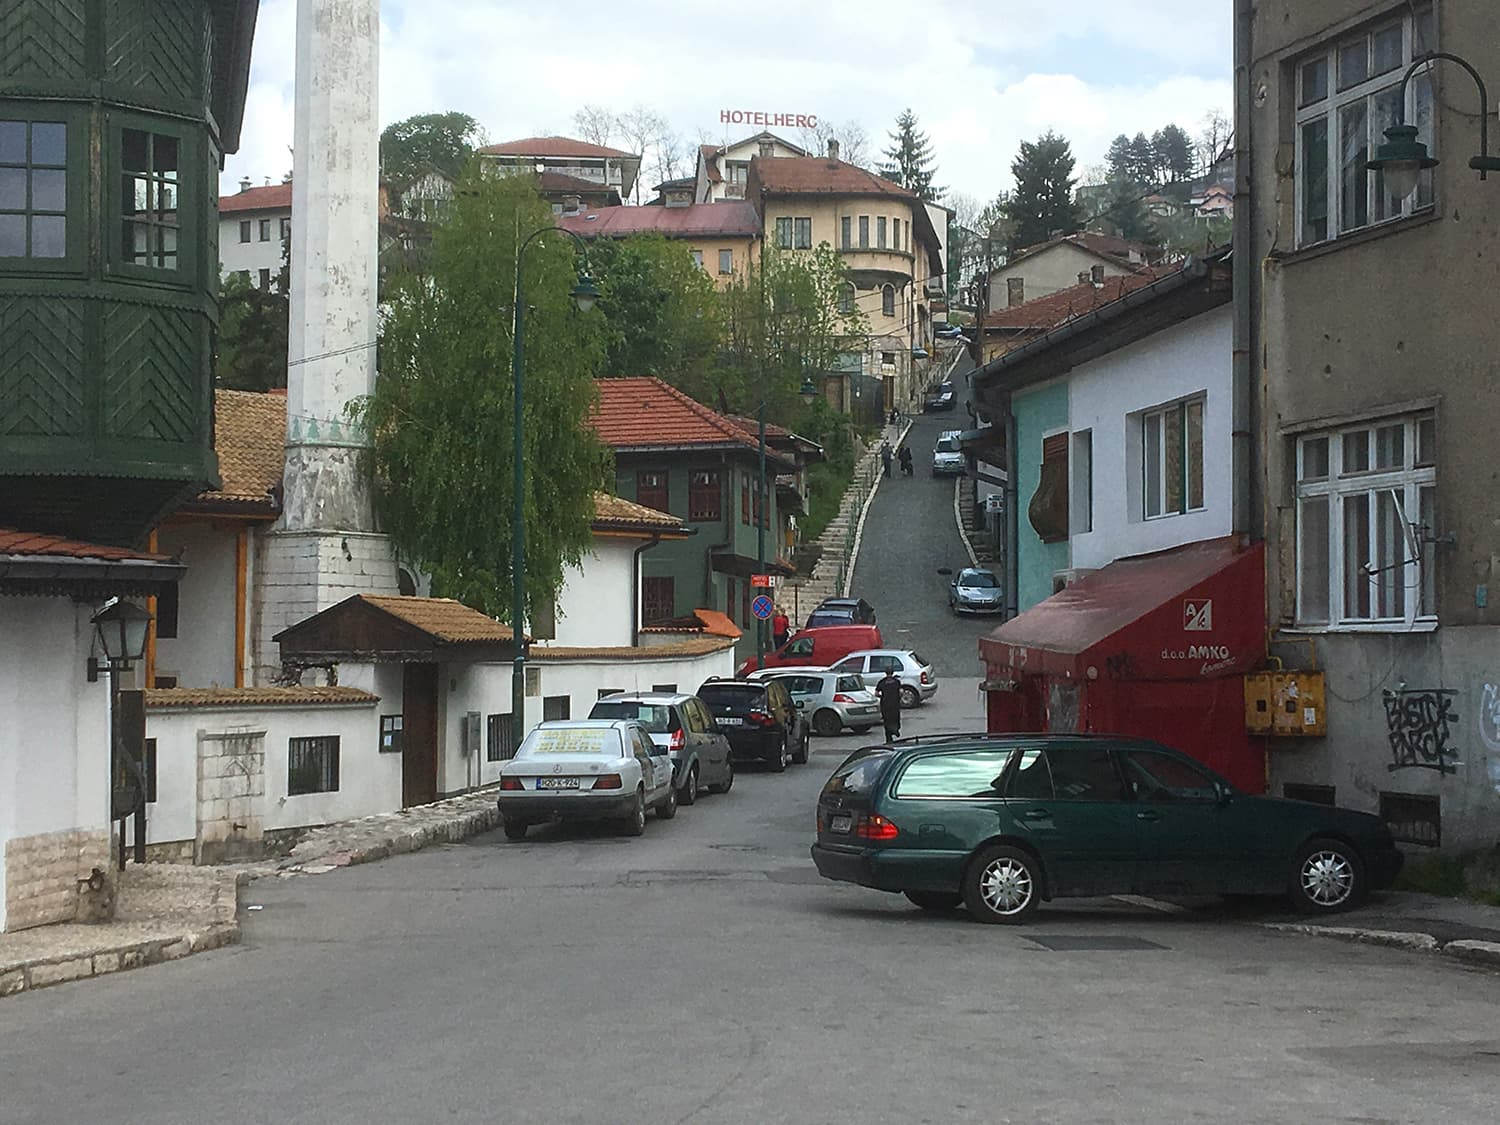 The Road to Istanbul, an old Ottoman-era road, in Sarajevo.